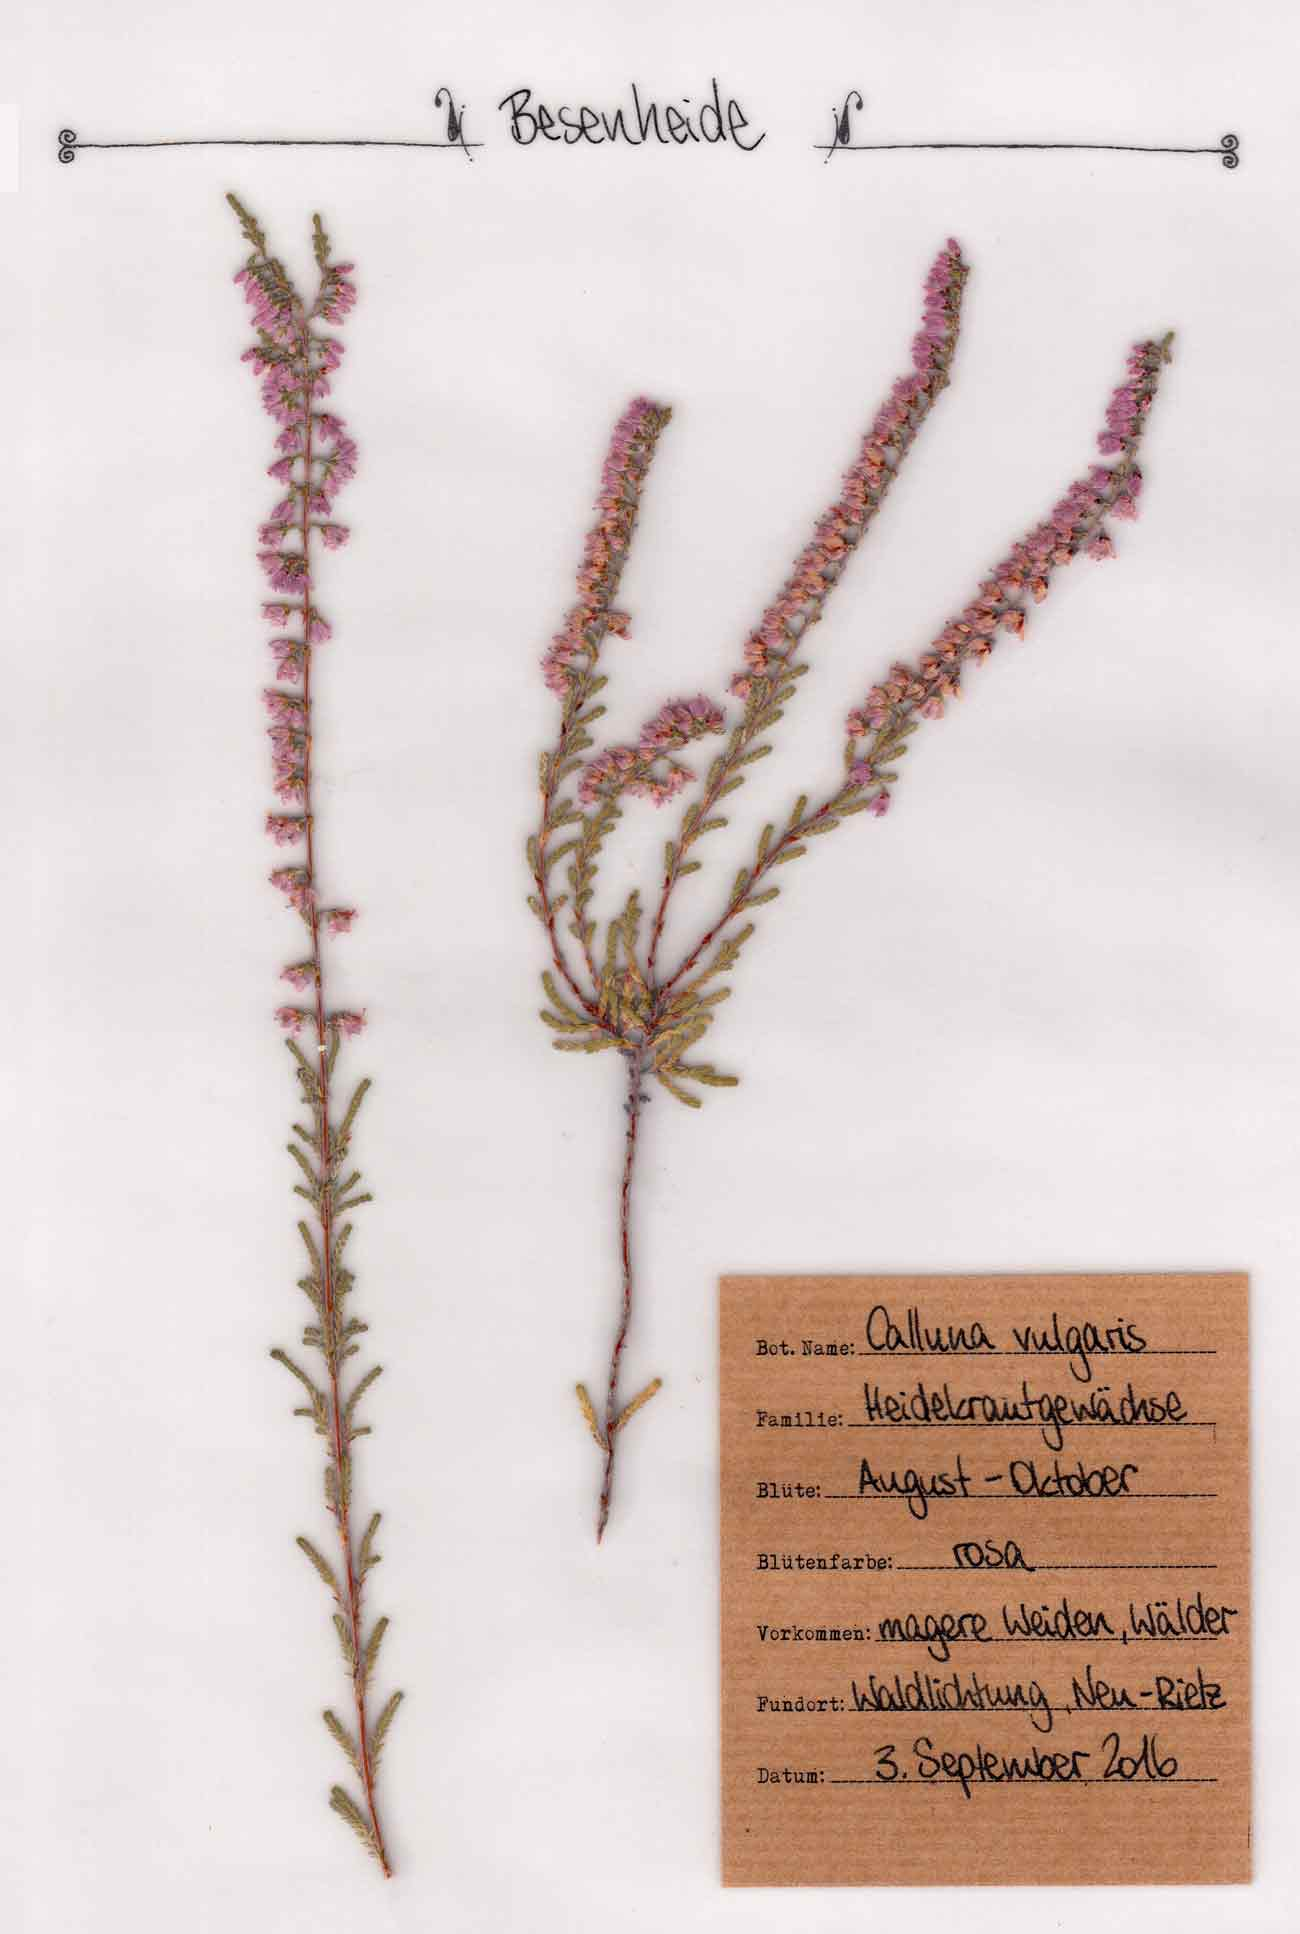 Besenheide Pflanzenportrait im digitalen Herbarium – Herbal Hunter